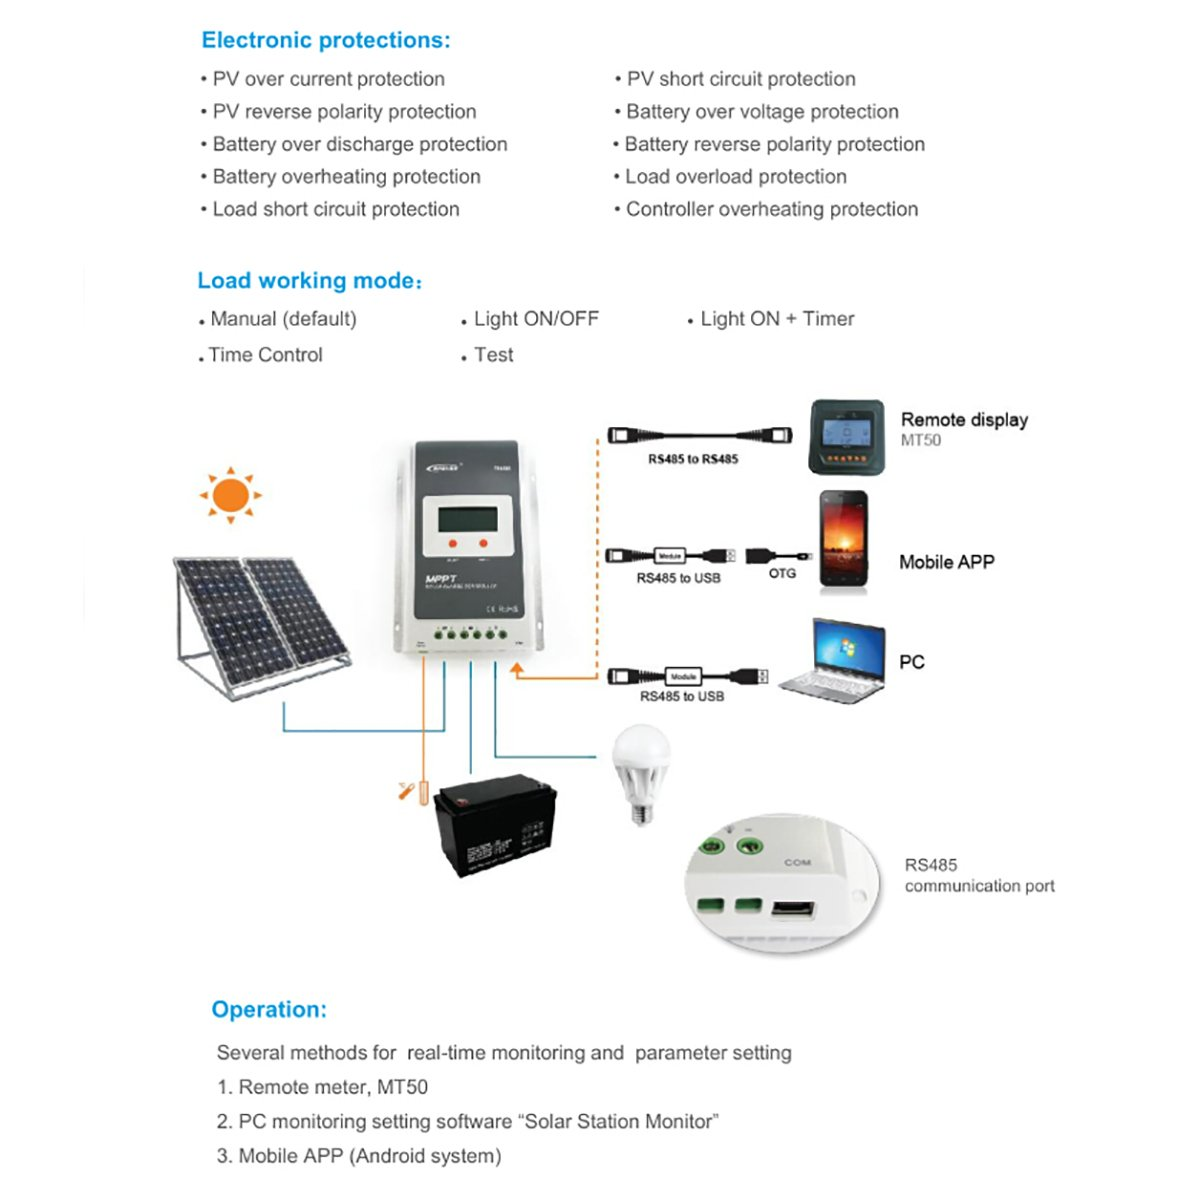 EPEVER MPPT Solar Charge Controller 20A 12V/24V Auto Work Tracer2210A Solar Panel Regulator with LCD Display Max PV 100V Input Power 260W/520W (20A, Tracer2210A) by EPsolar (Image #7)